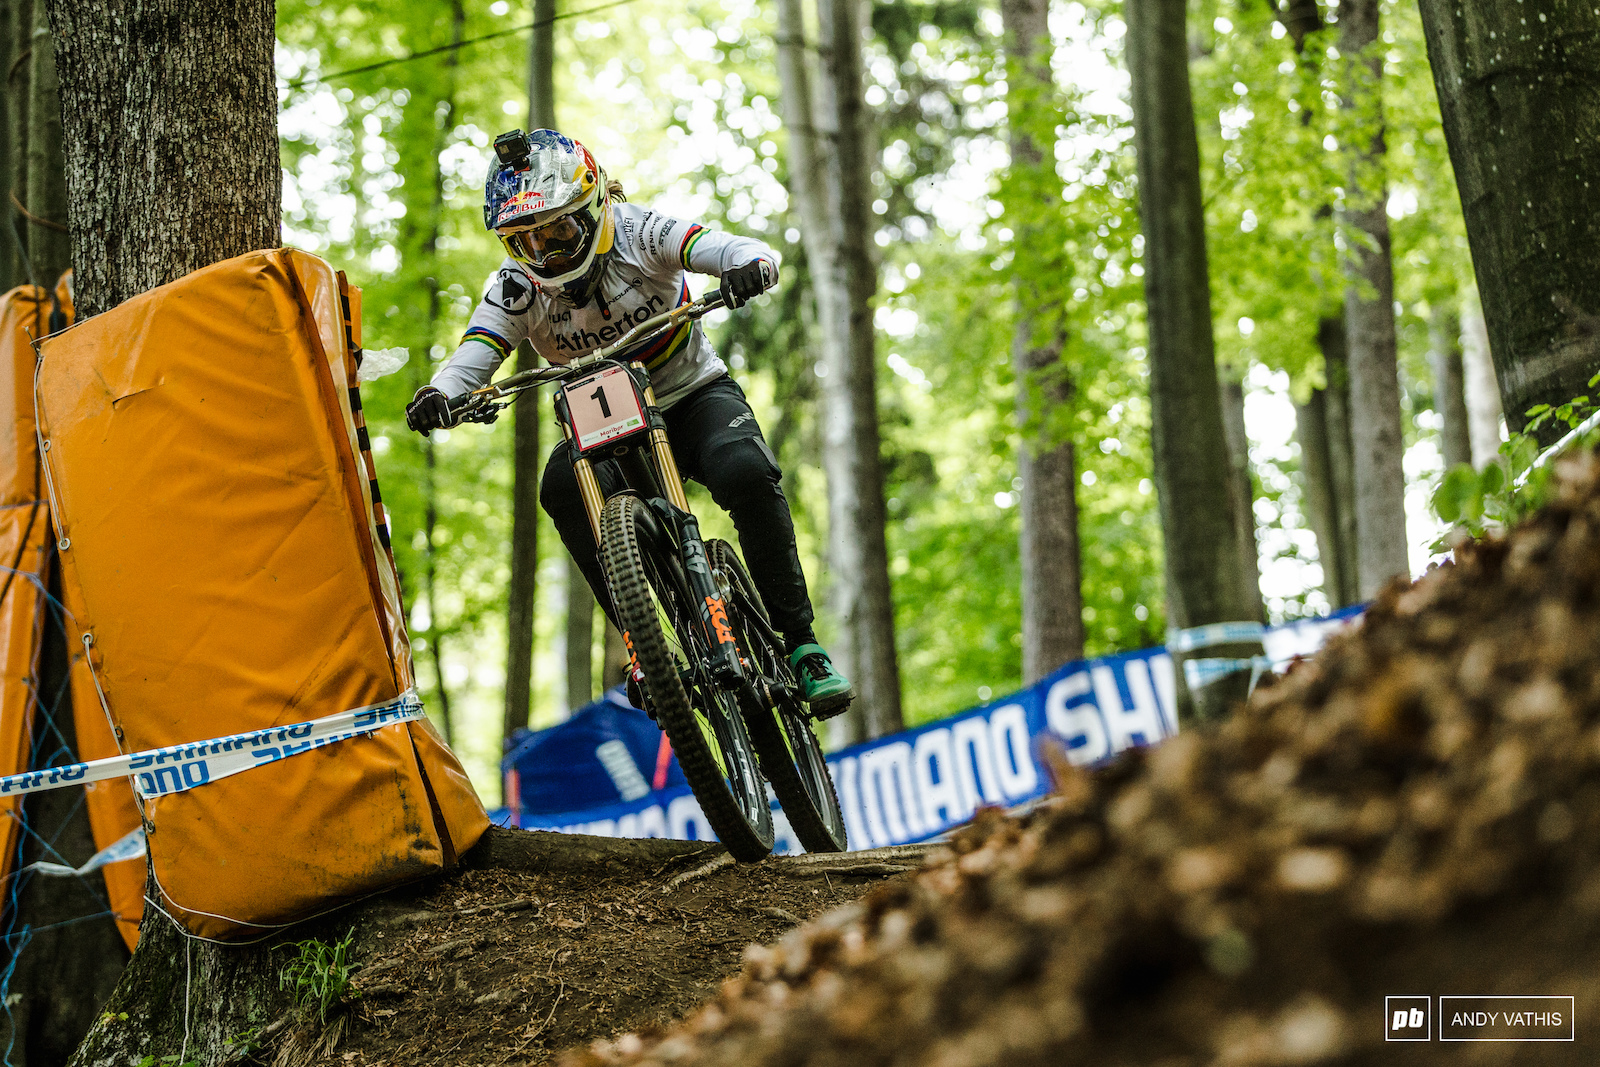 Rachel Atherton battled it out with Tahnee Seagrave in what was a dramatic final for the women s field.